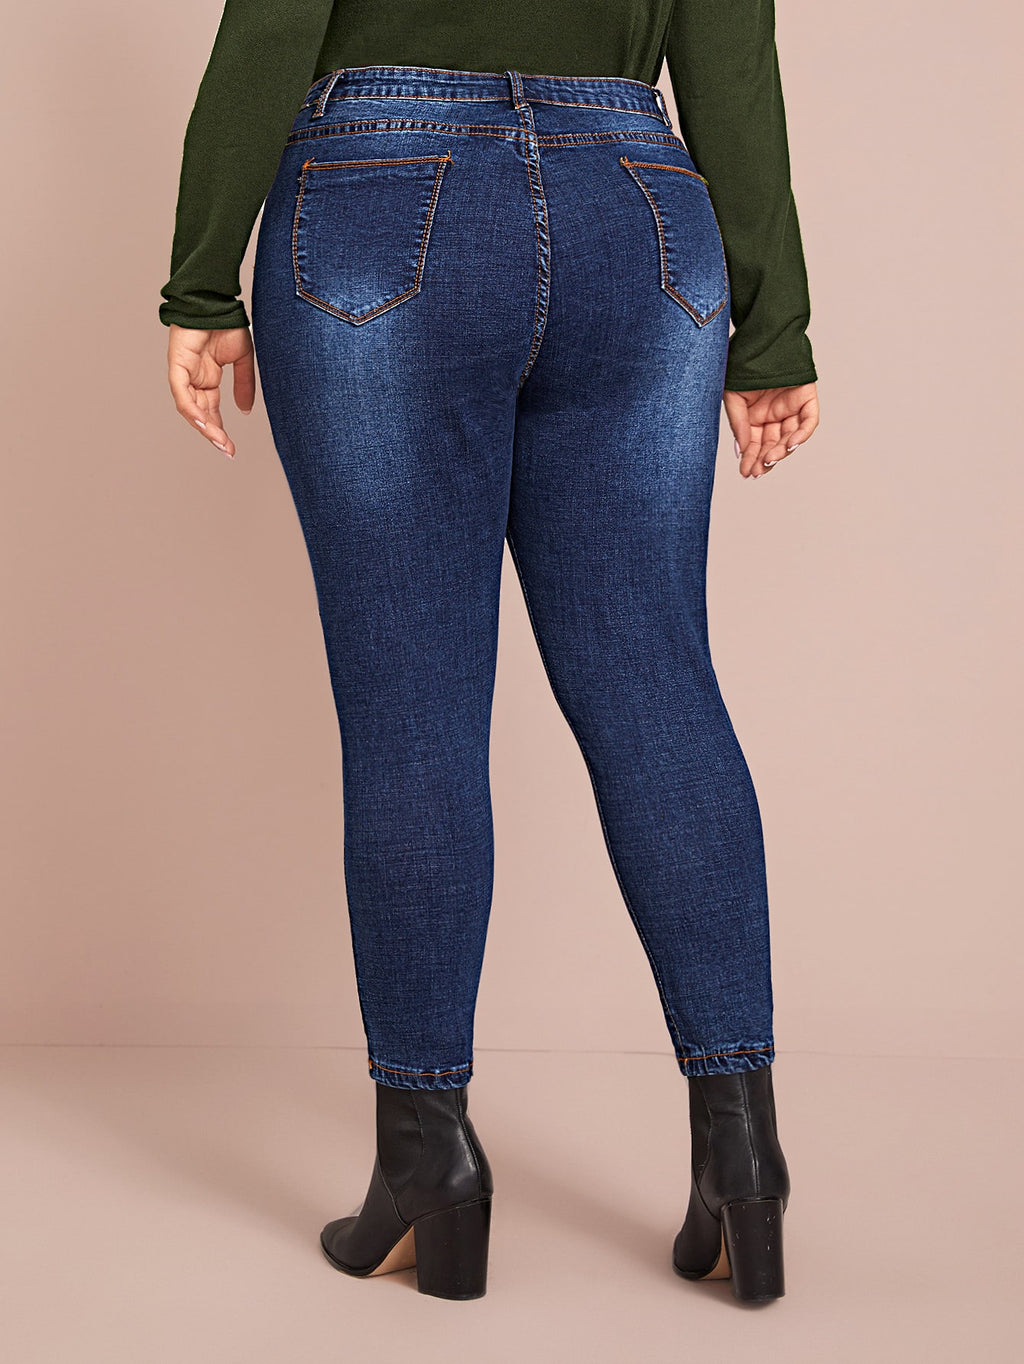 Plus Size Classic Denim Distressed Skinny Jeans